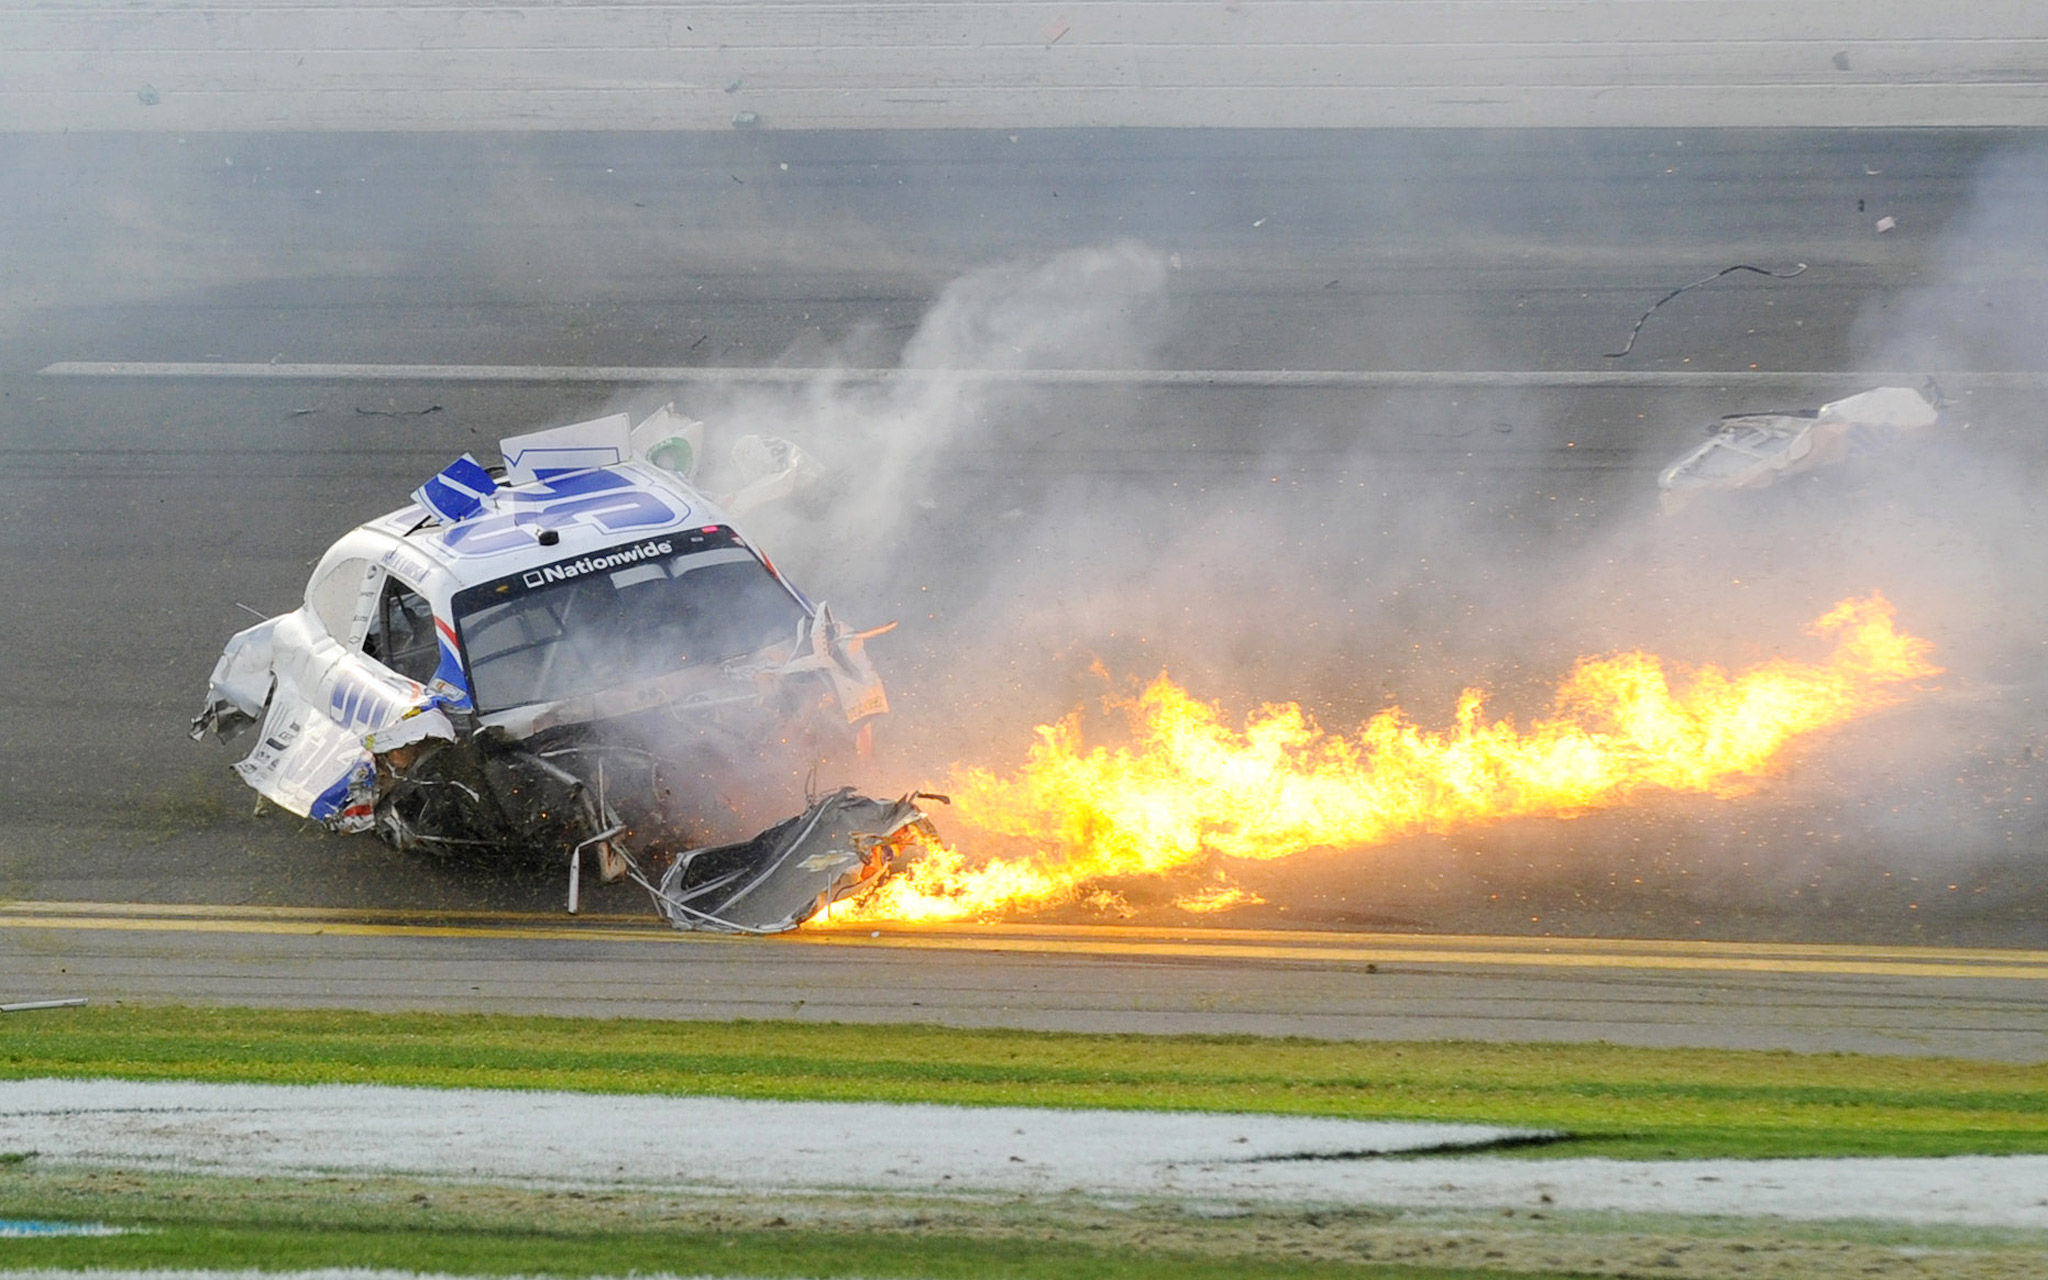 Kyle Larson's car on fire